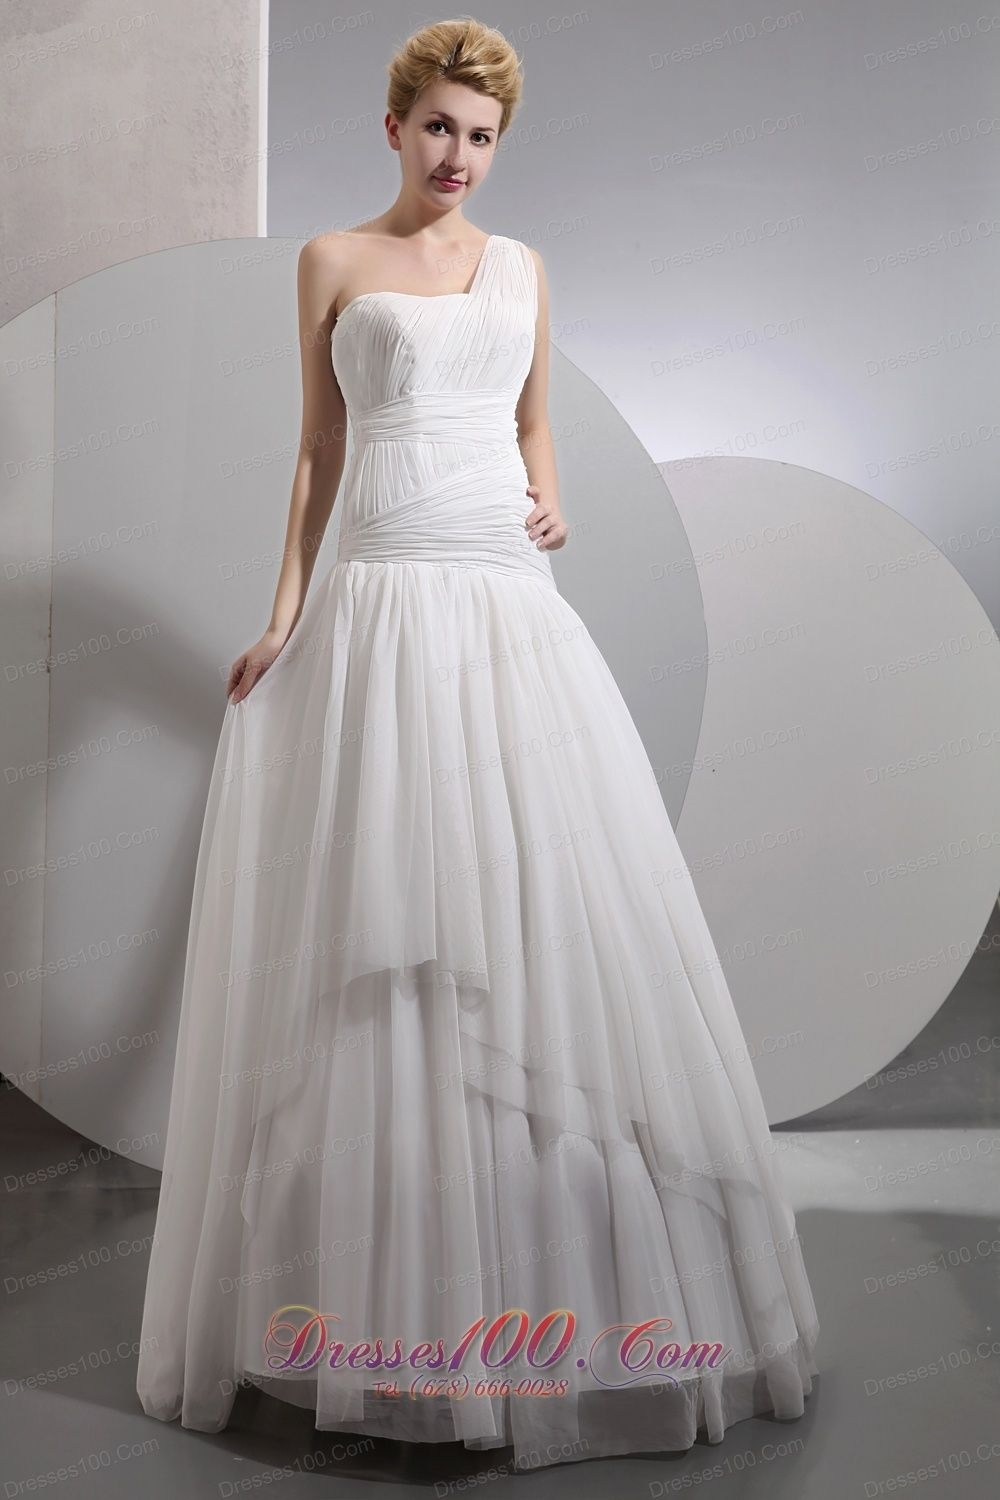 Pin On Uptown Wedding Dress In New Jersey